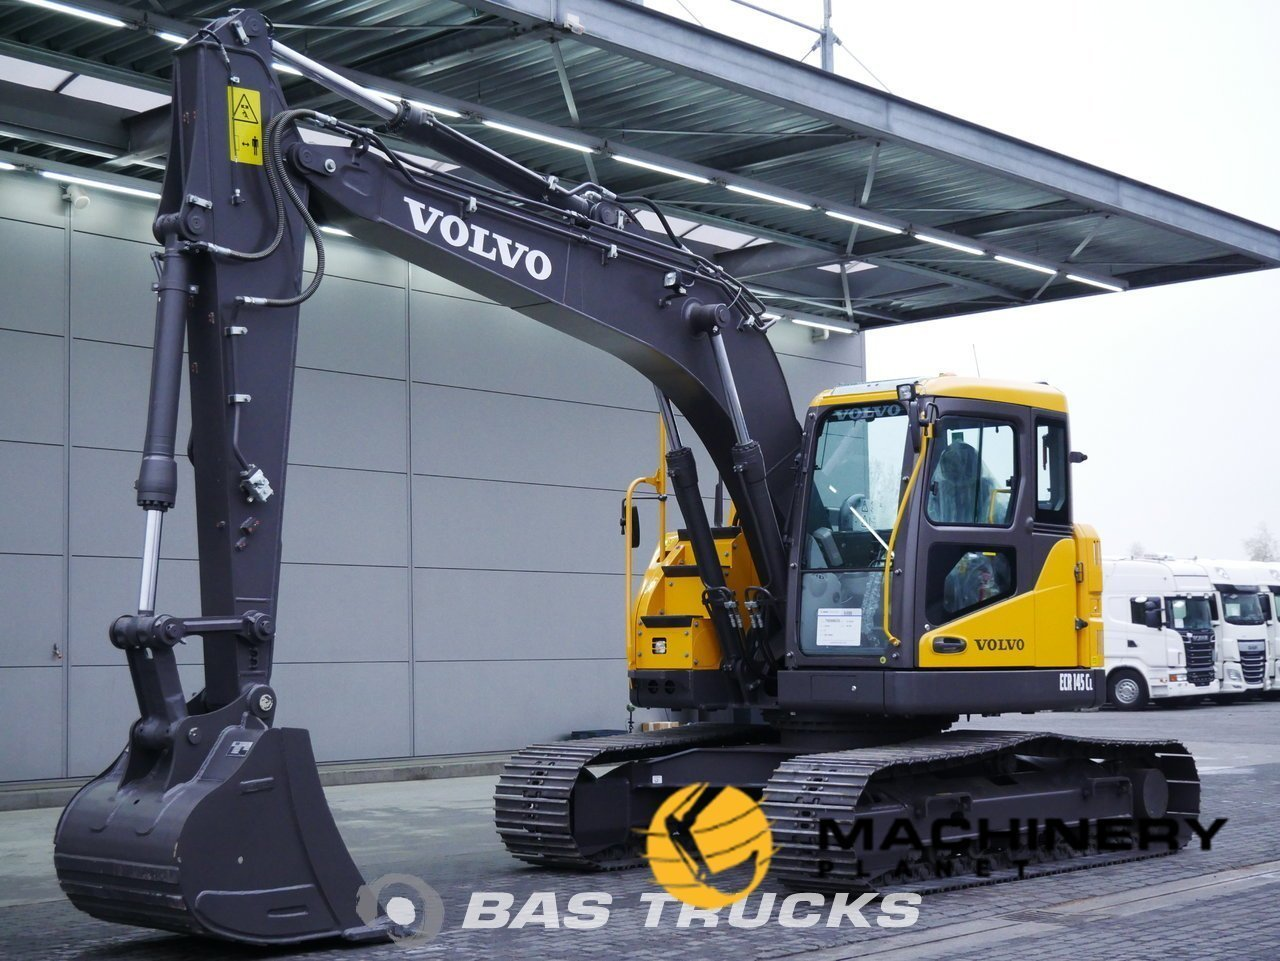 Used-Construction-equipment-Volvo-ECR145CL-Track-2018_141864_1-1554125228539_5ca211ac83946-1.jpg